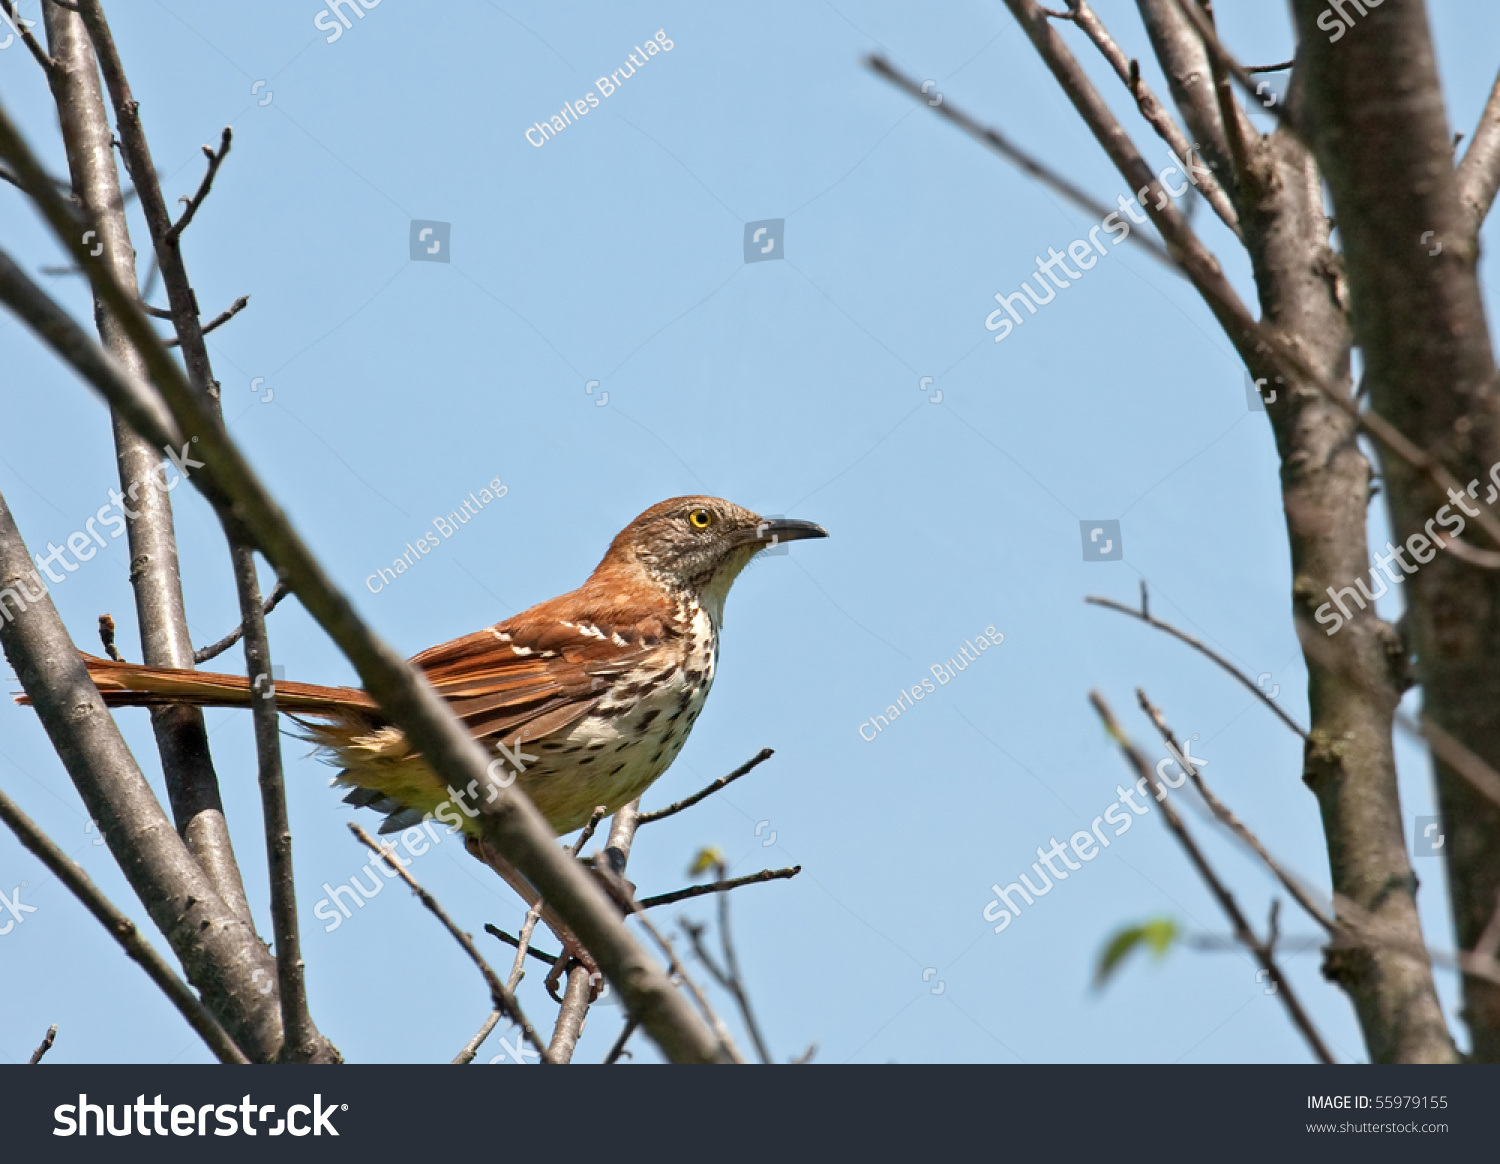 Brown thrasher symbolism gallery symbol and sign ideas brown thrasher symbolism image collections symbol and sign ideas brown thrasher toxostoma rufum perched on a biocorpaavc